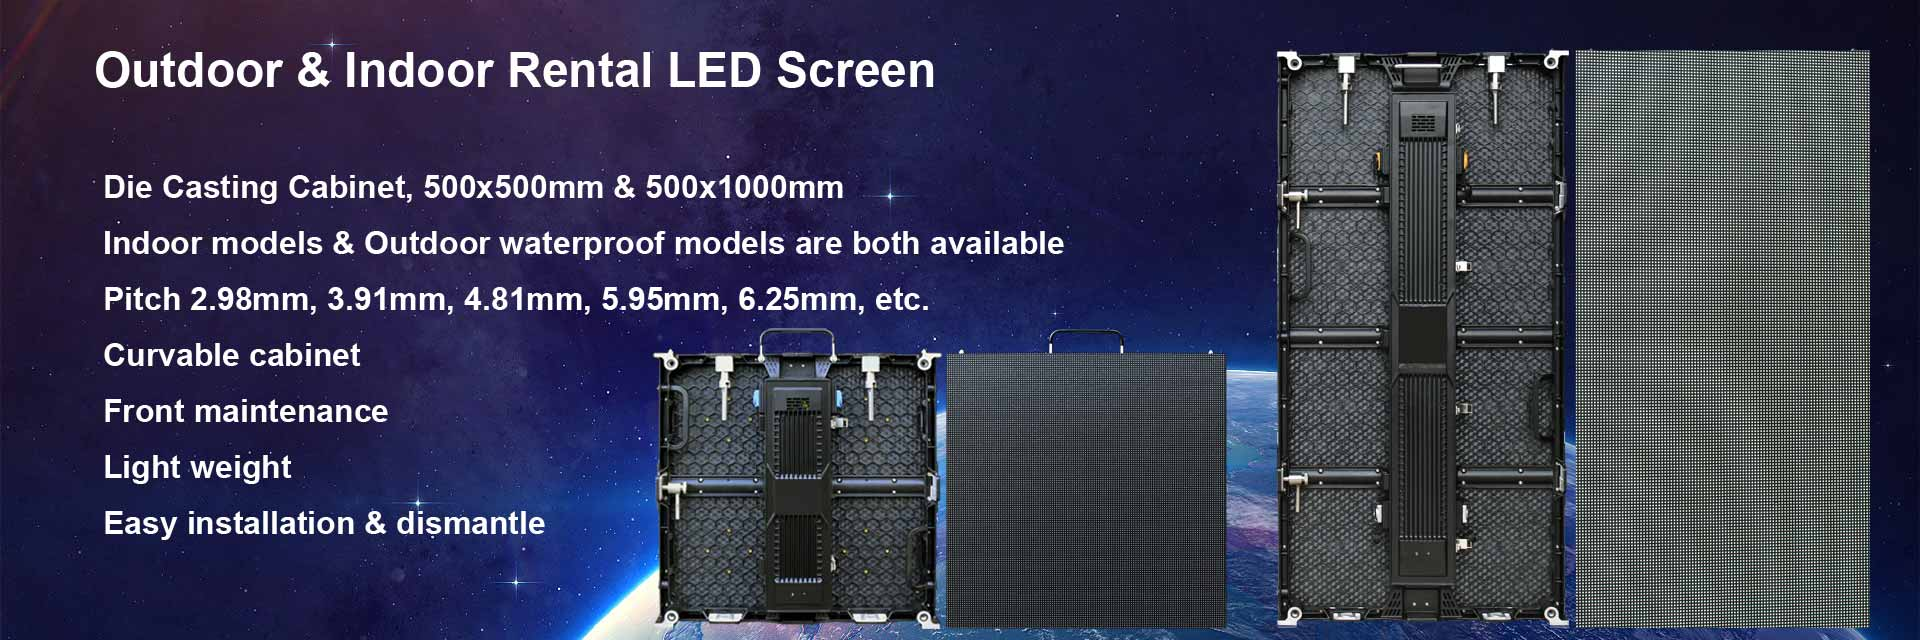 rental-led-screen-banner-2